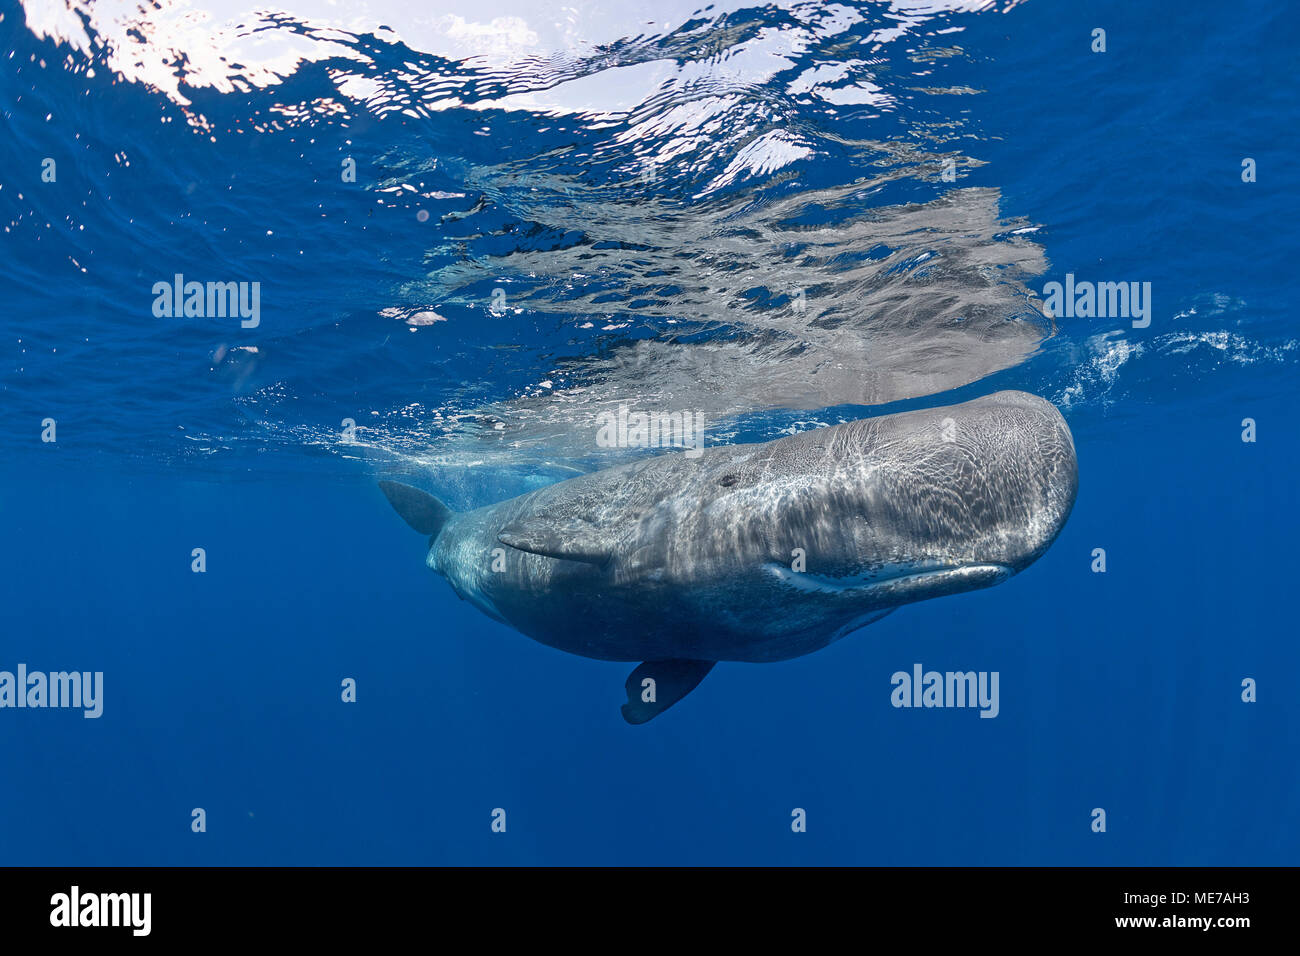 Pottwal (Physeter macrocepahalus), Pico, Azoren, Portugal | Sperm Whale (Physeter macrocephalus) in blue water, Pico Island, Azores, Portugal - Stock Image